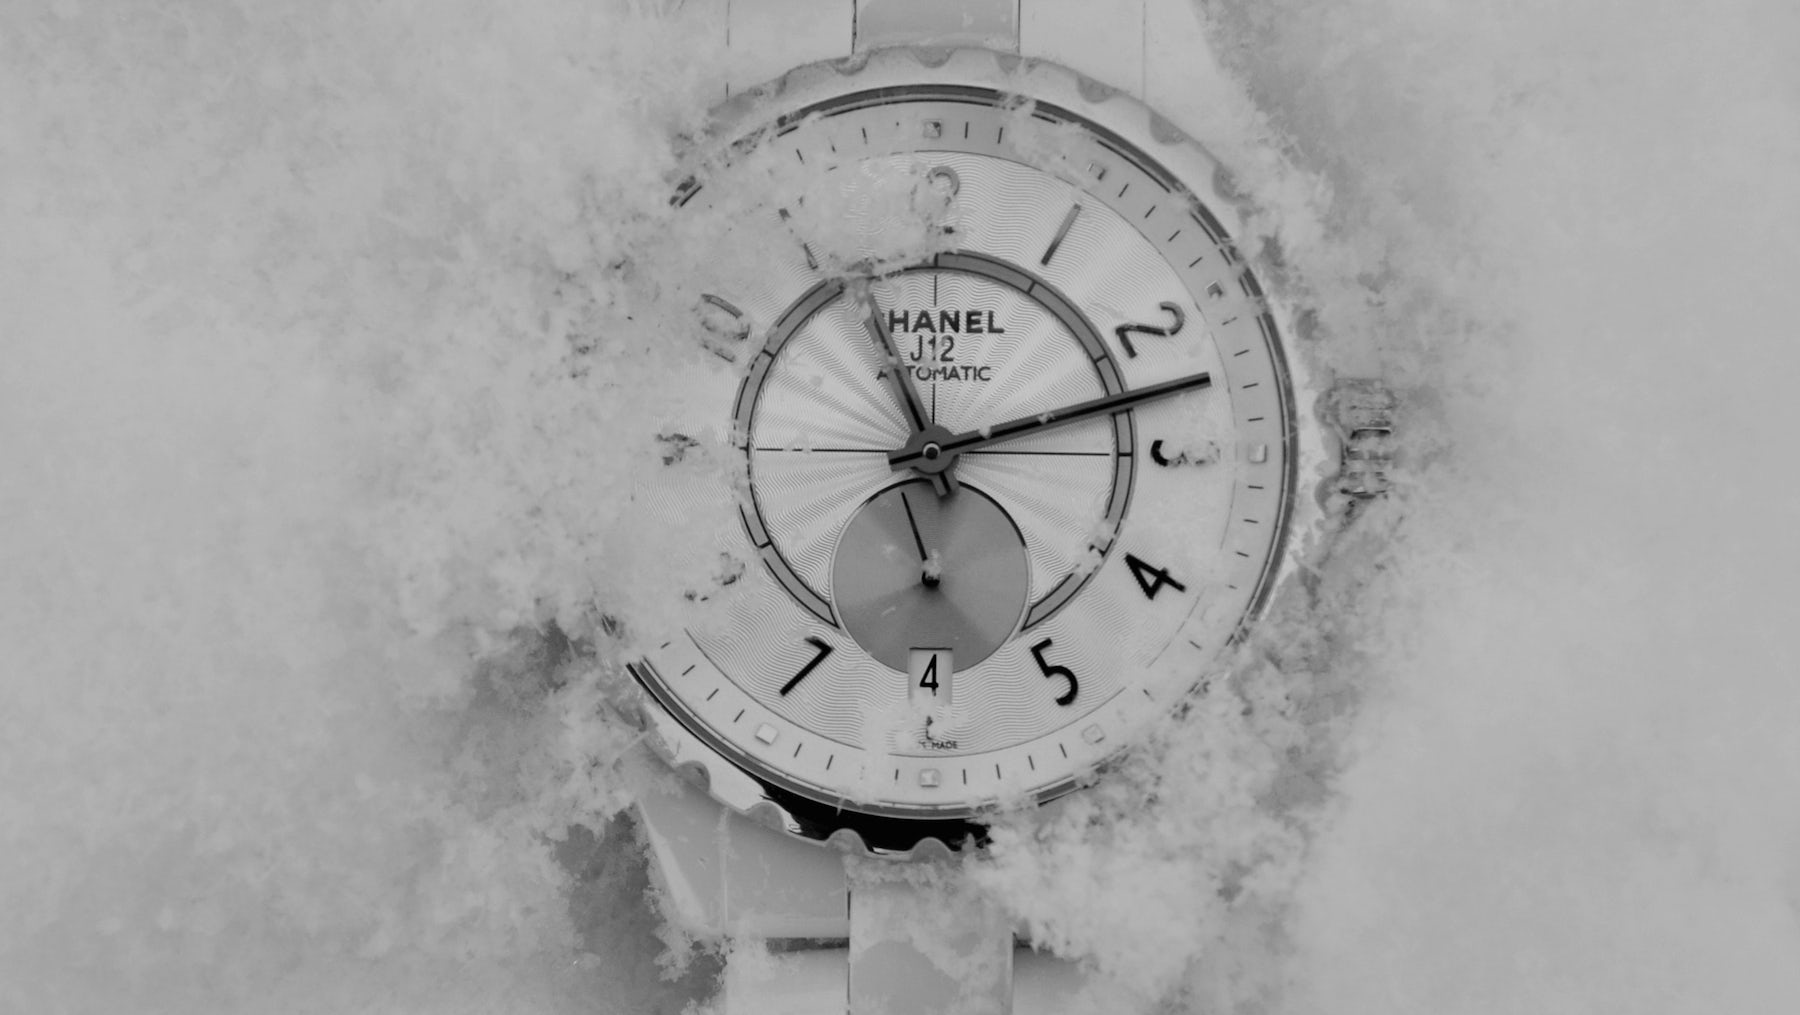 Chanel J12 watch in white | Source: Chanel